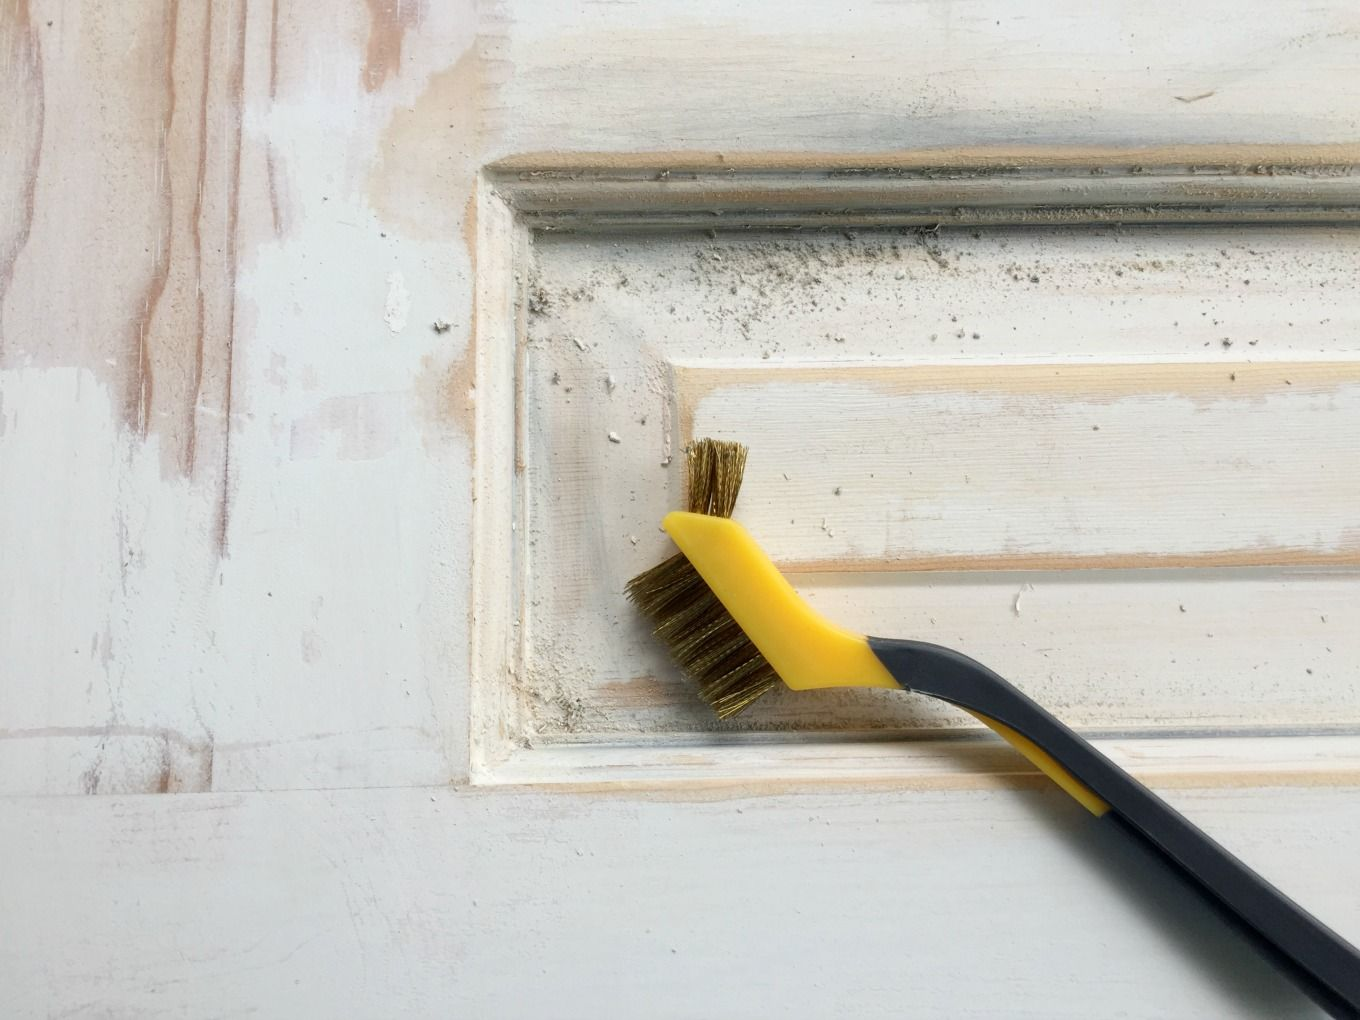 How to strip paint from wood doors